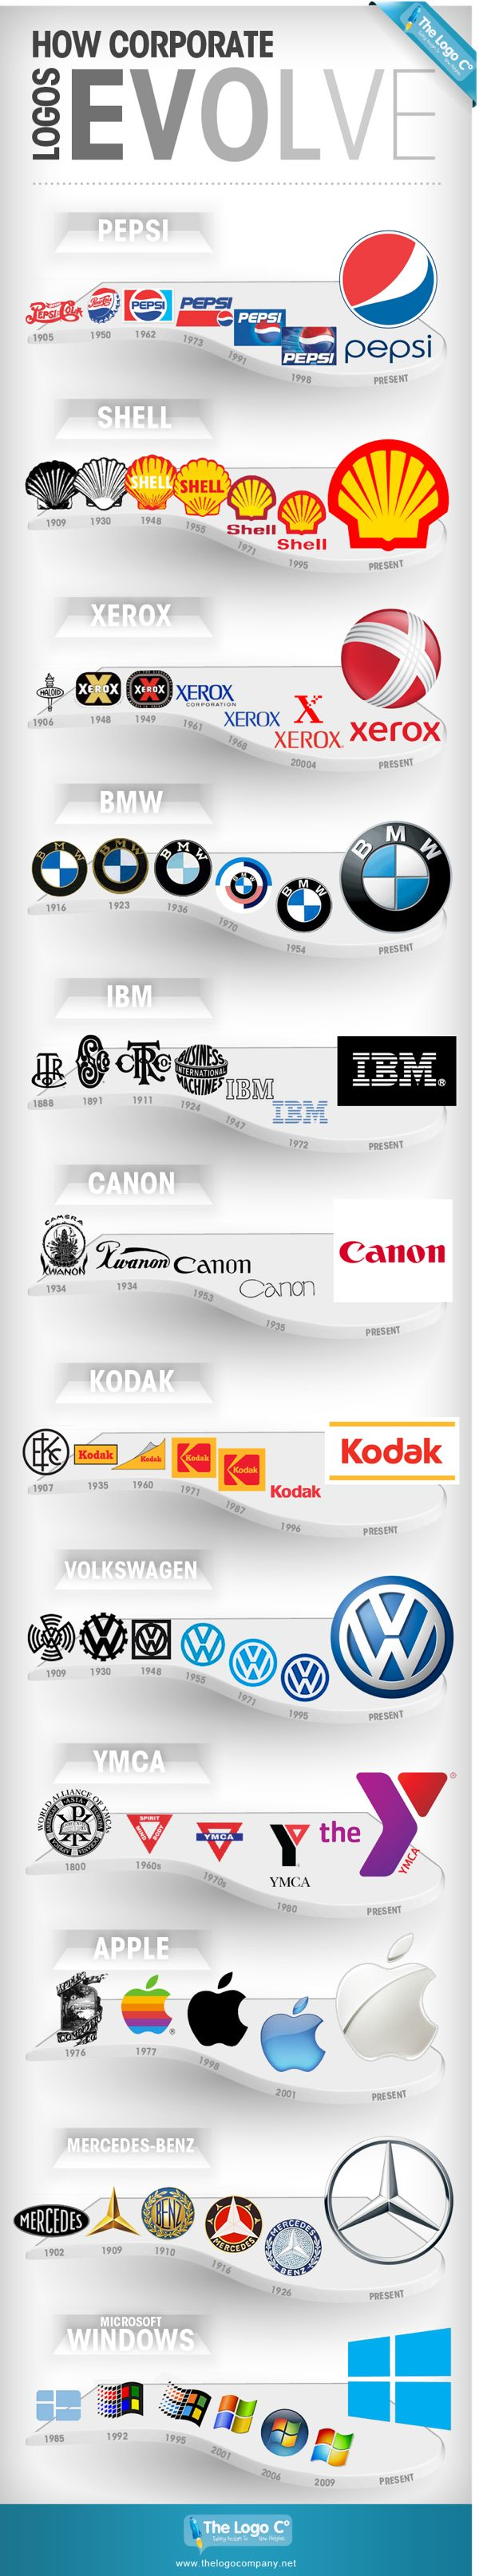 How Corporate Logos Evolve - http://www.coolinfoimages.com/infographics/how-corporate-logos-evolve/